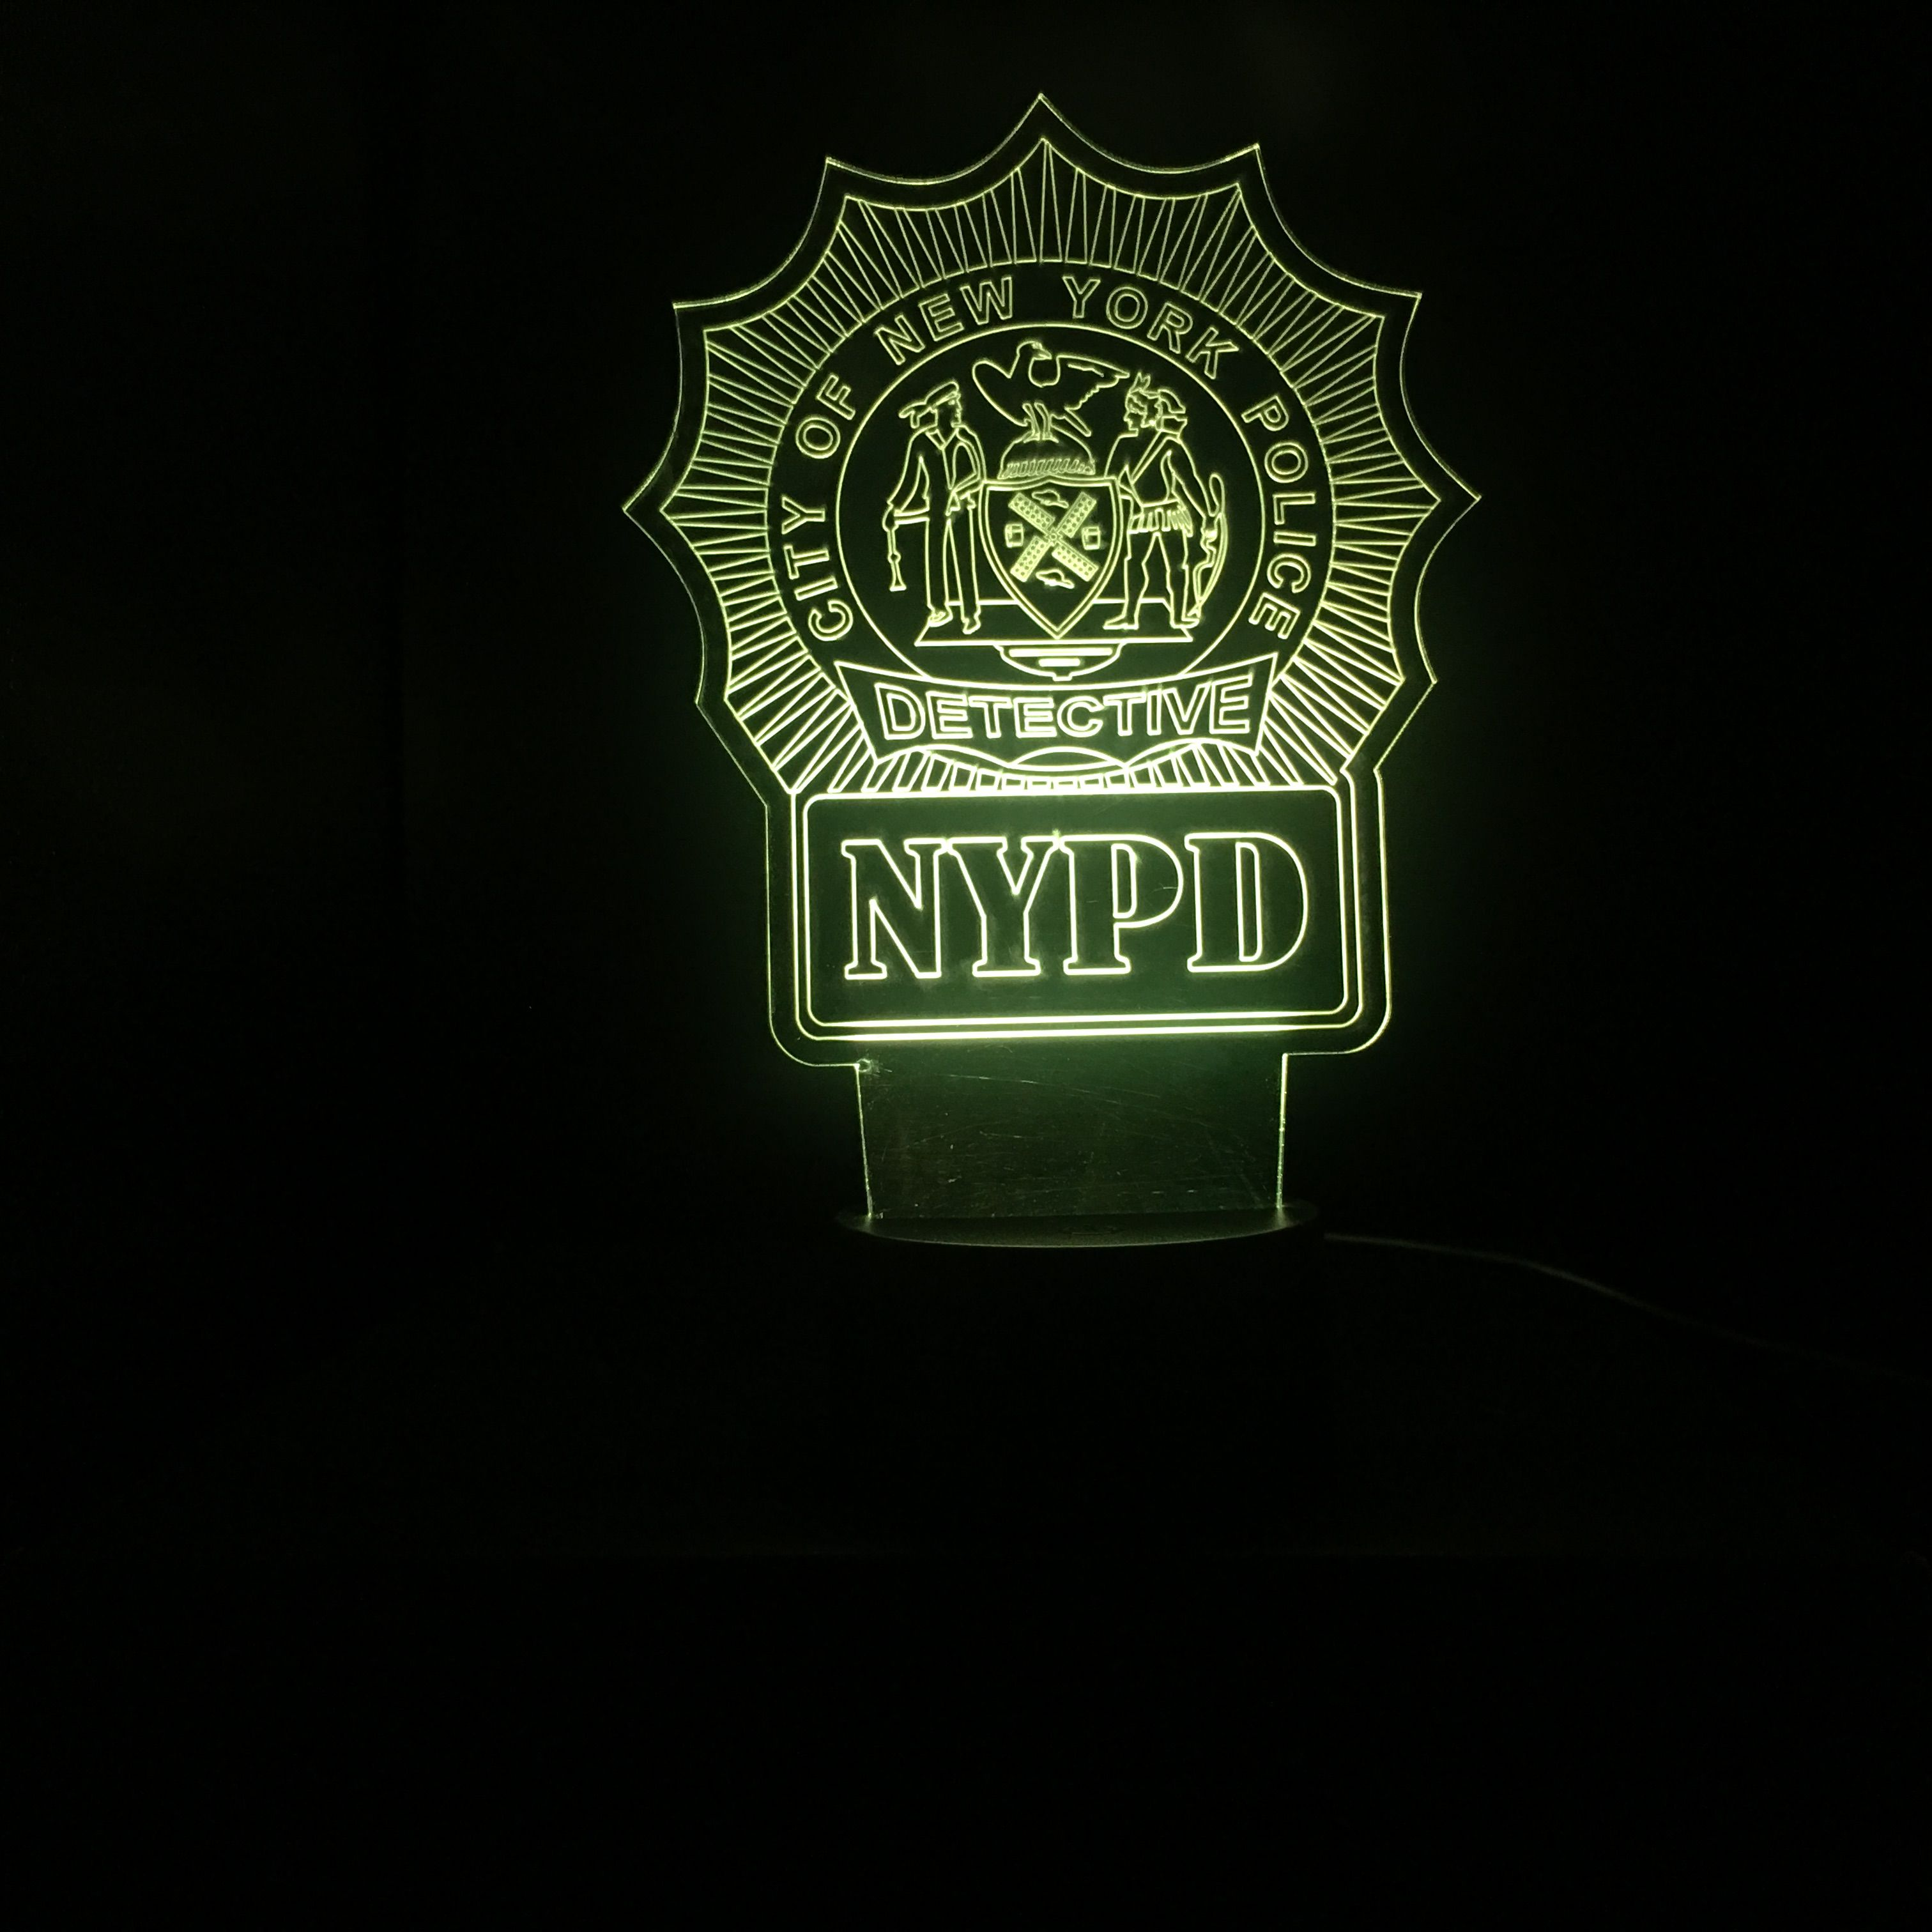 New York Police Detective Gift Light Nypd Etsy Detective Gifts New York Police Police Detective